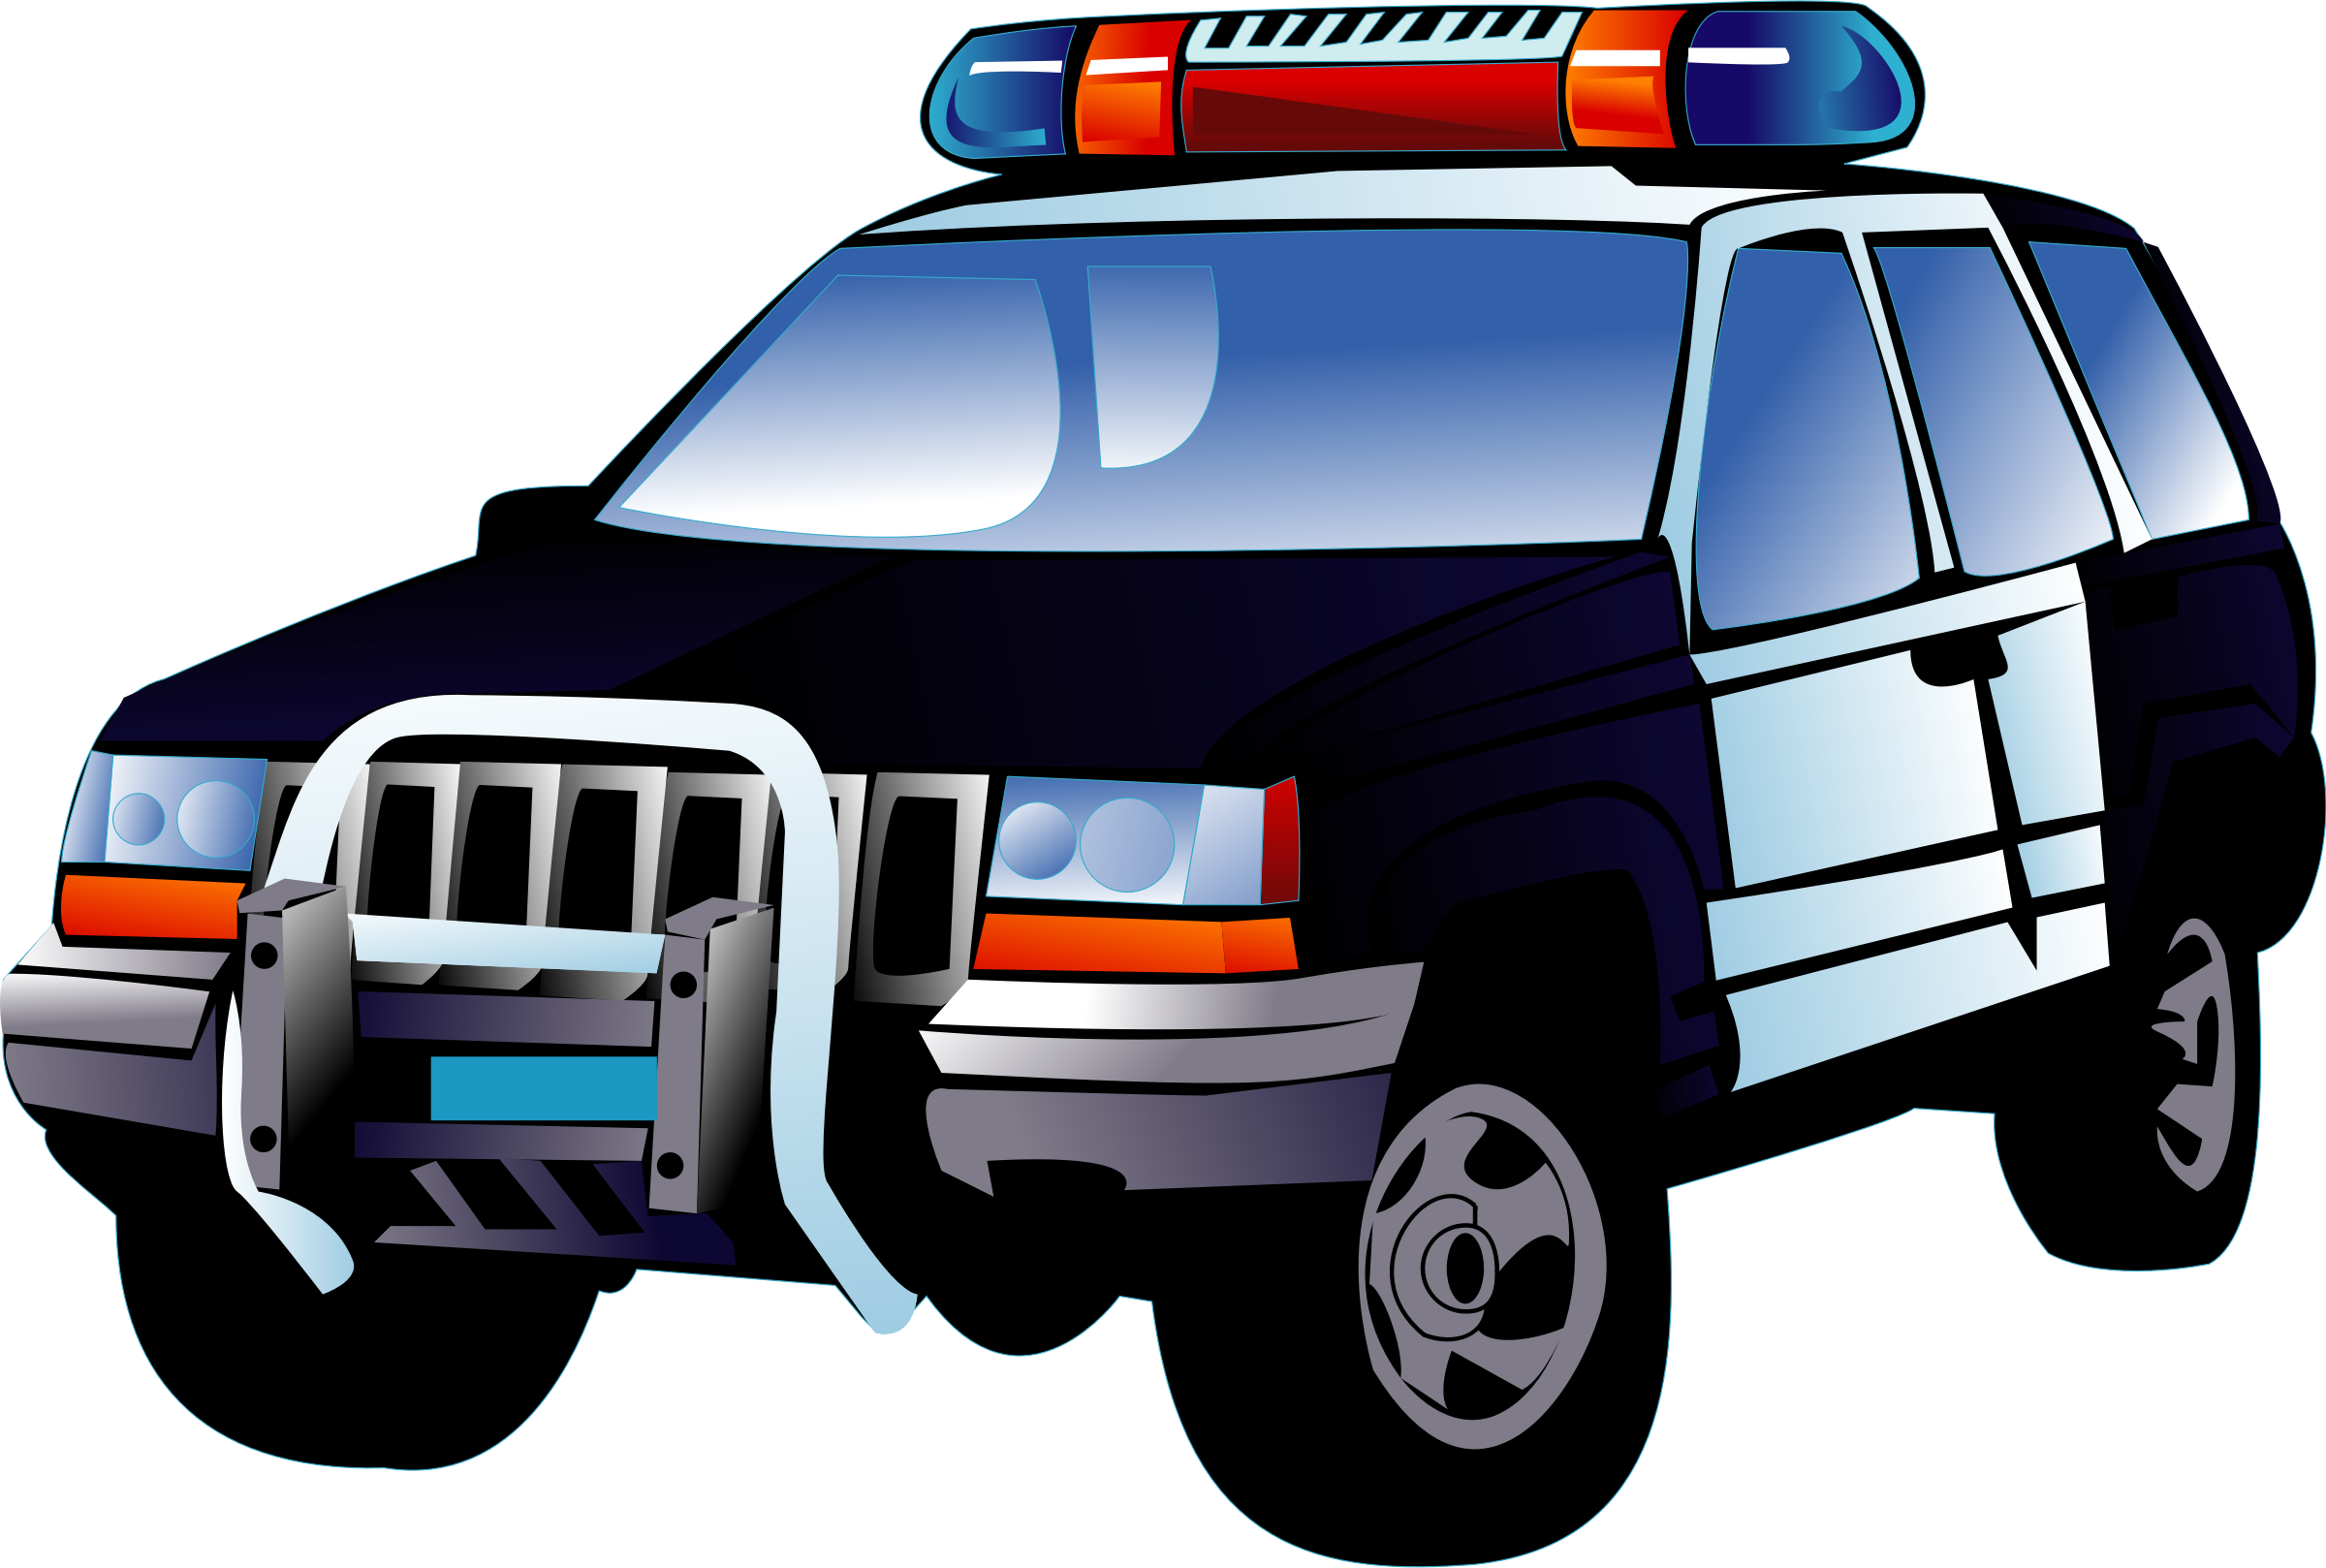 Police car big image. Clipart cars delivery